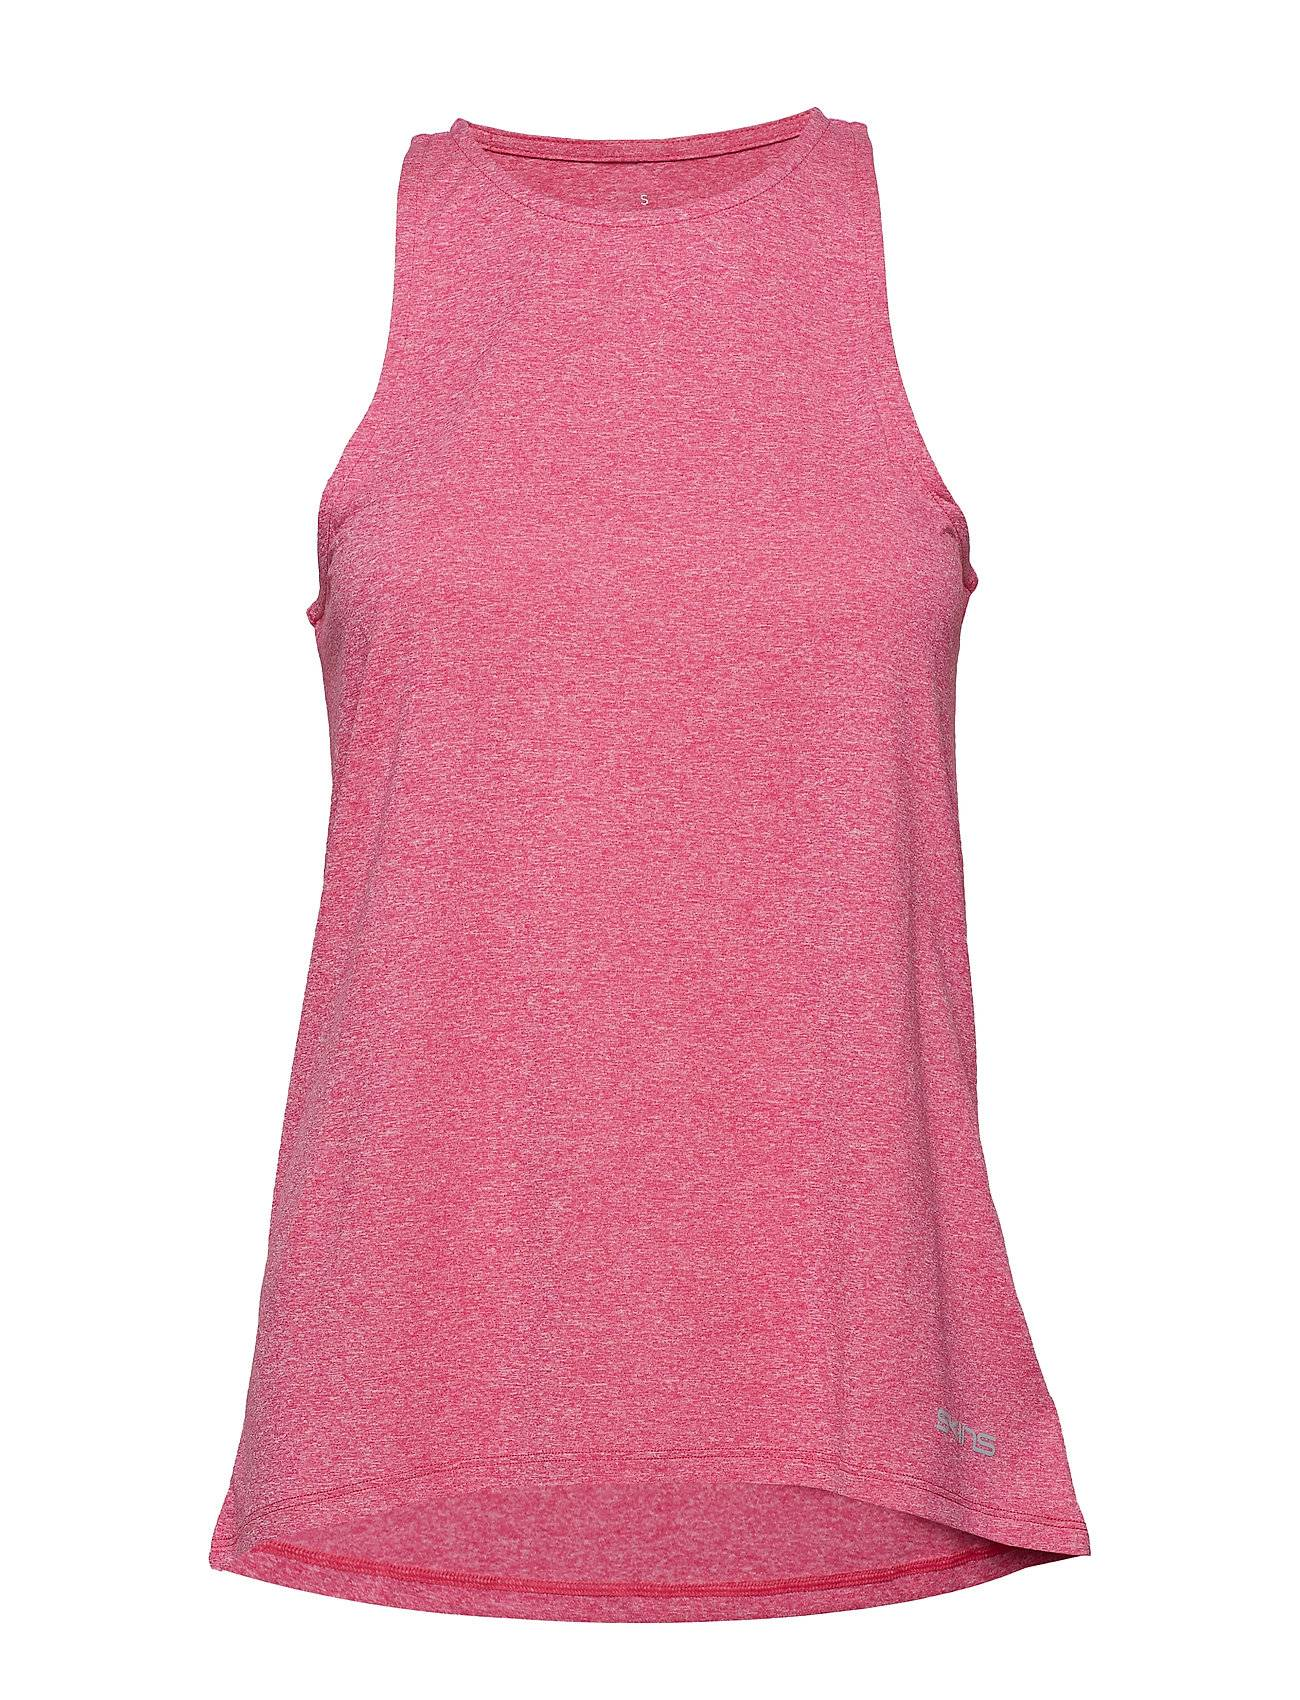 Skins Activewear Siken Womens Tank Top T-shirts & Tops Sleeveless Vaaleanpunainen Skins